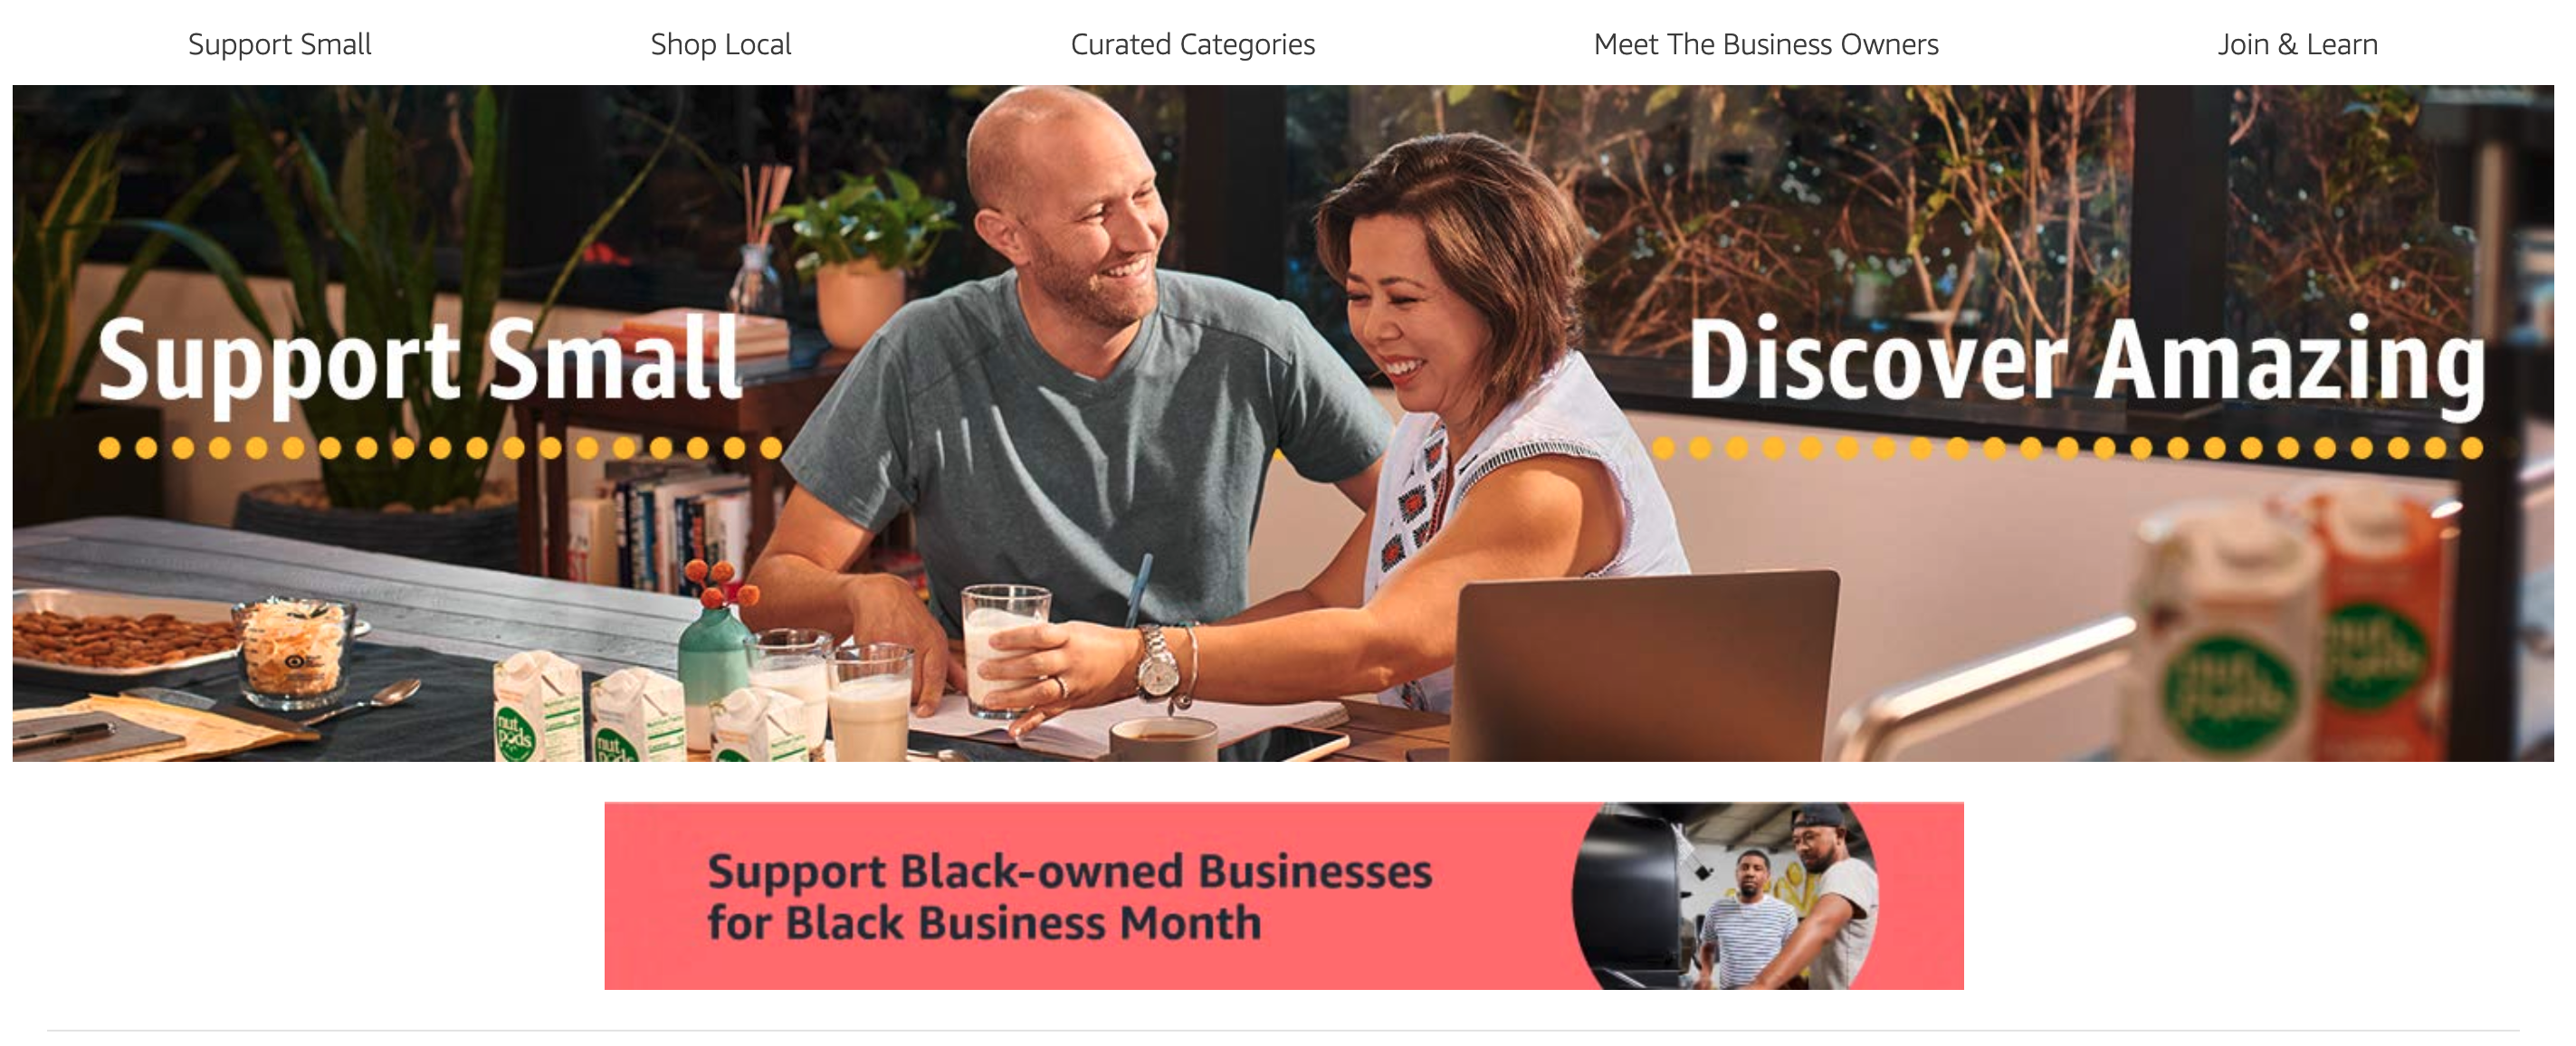 amazon-small-business-page.png